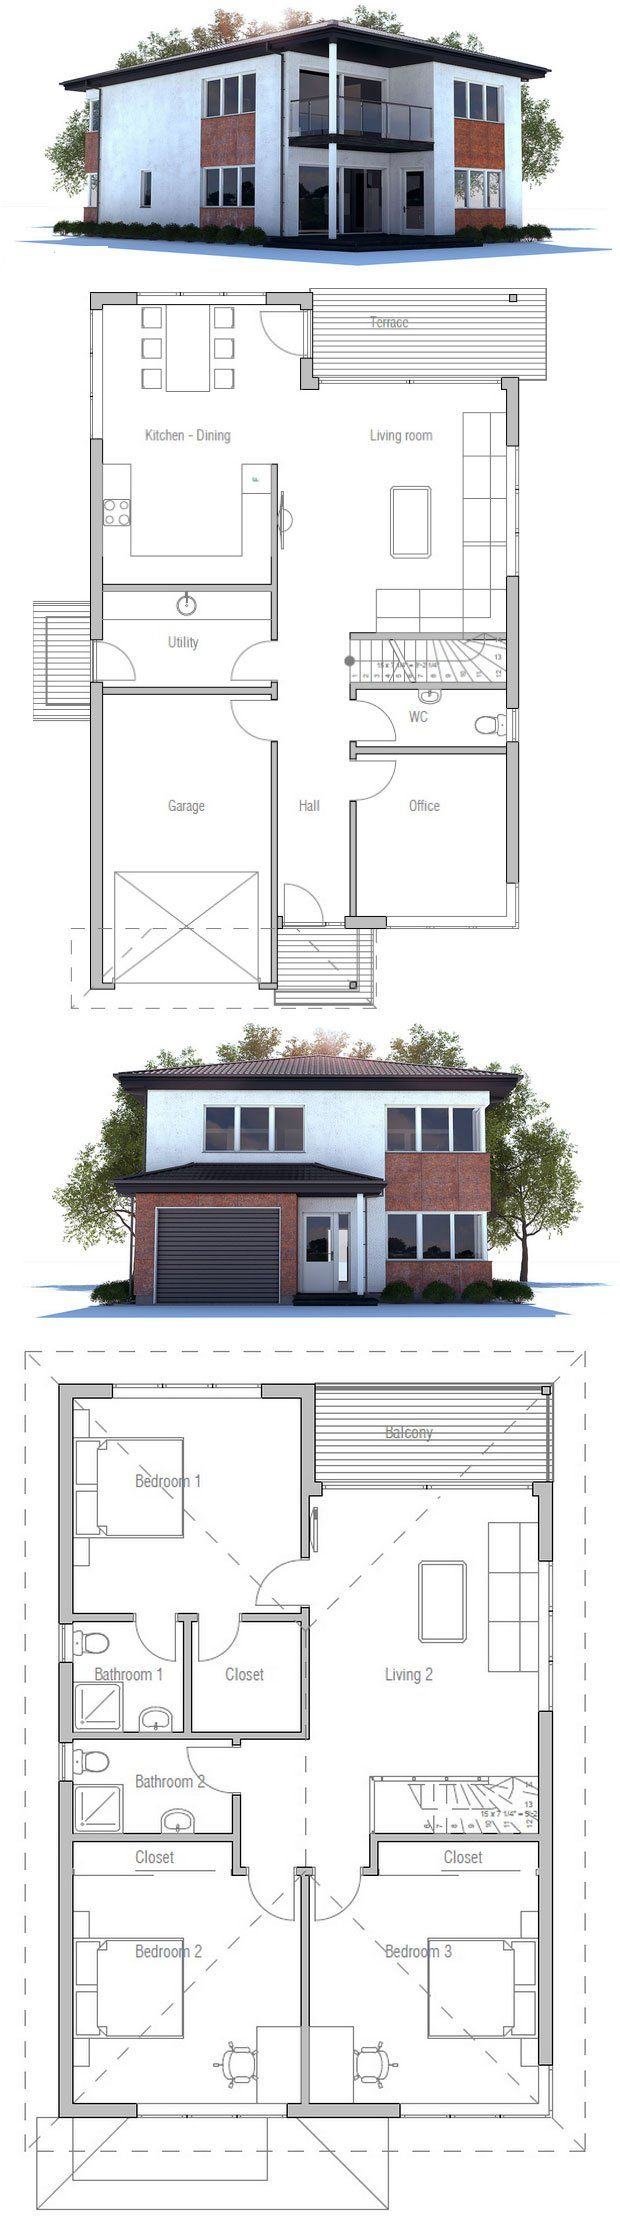 Narrow lot modern house plan floor plan from concepthome Narrow contemporary house plans